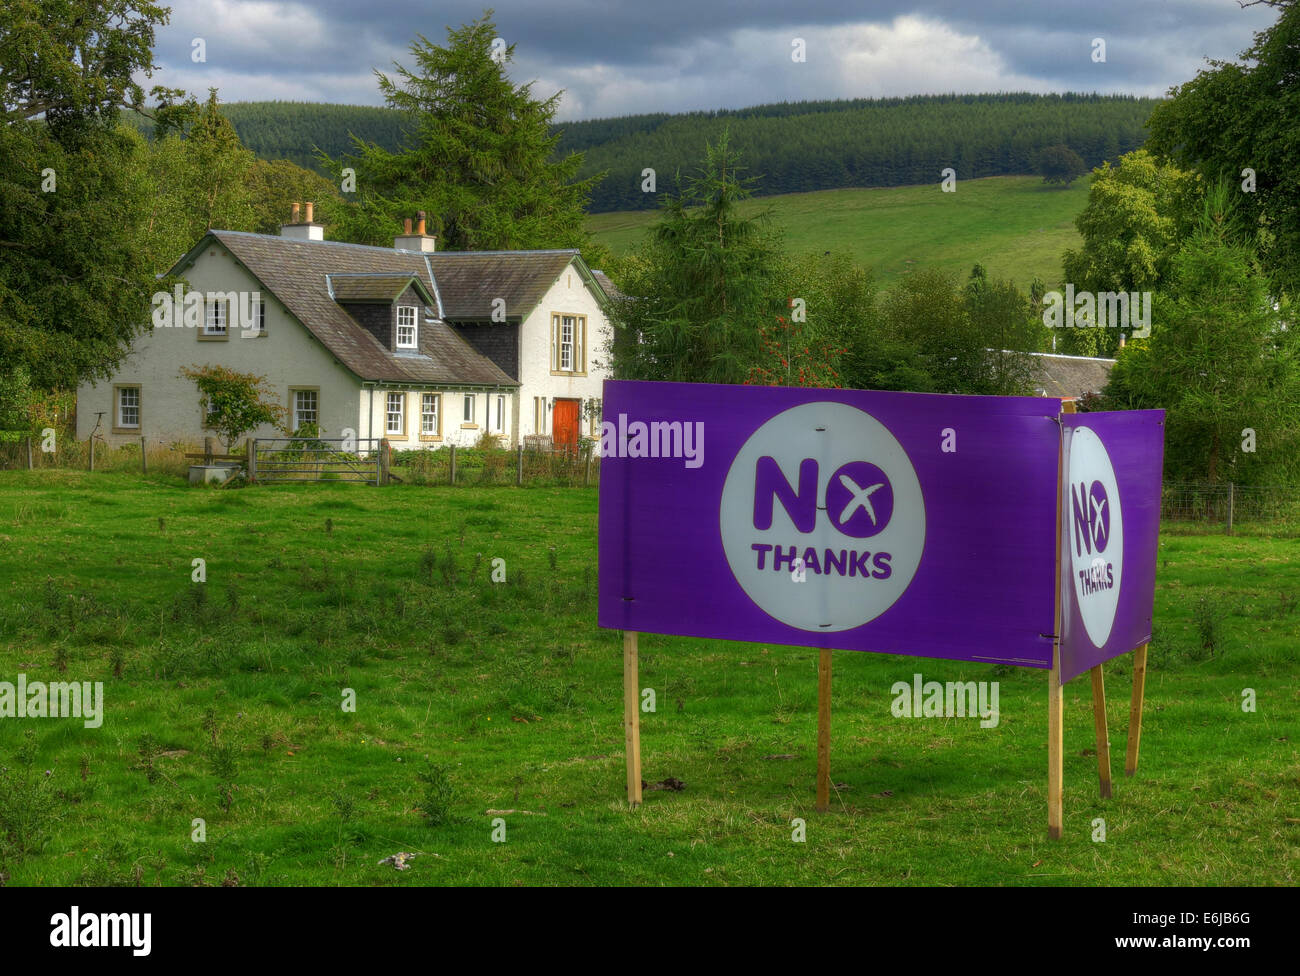 Sep,field,fields,rural,borders,decides,votes,ballot,vote,Scottish,Field,September,2014,Scotland,UK,debate,result,Scots,opinion,bettertogether,bright,sunshine,passion,Nothanks,publicity,Coulter,Mill,Village,Scottish,Borders,Scotland,UK A702 M75 A9 A1 sign,indyref,indyref,Alastair,Darling,Alex,Salmon,Salmond,powers,power,for,holyrood,Edinburgh,City,of,Glasgow City,of,Edinburgh Fife North,Lanarkshire South,Lanarkshire Aberdeenshire Highland City,of,Aberdeen West,Lothian Renfrewshire Falkirk Dumfries,and,Galloway Perth,and,Kinross City,of,Dundee North,Ayrshire East,Ayrshire Scottish,Borders South,Ayrshire Angus East,Dunbartonshire East,Lothian West,Dunbartonshire Stirling East,Renfrewshire Argyll,and,Bute Moray Midlothian Inverclyde Clackmannanshire Na,h-Eileanan,Siar,(Western,Isles) Shetland,Islands Orkney,Islands,CNES,Scottish,SNP,independance party,independence,indyref,referendum,2nd,second,Brexit,#Brexit,hotpixuk,@hotpixuk,Buy Pictures of,Buy Images Of